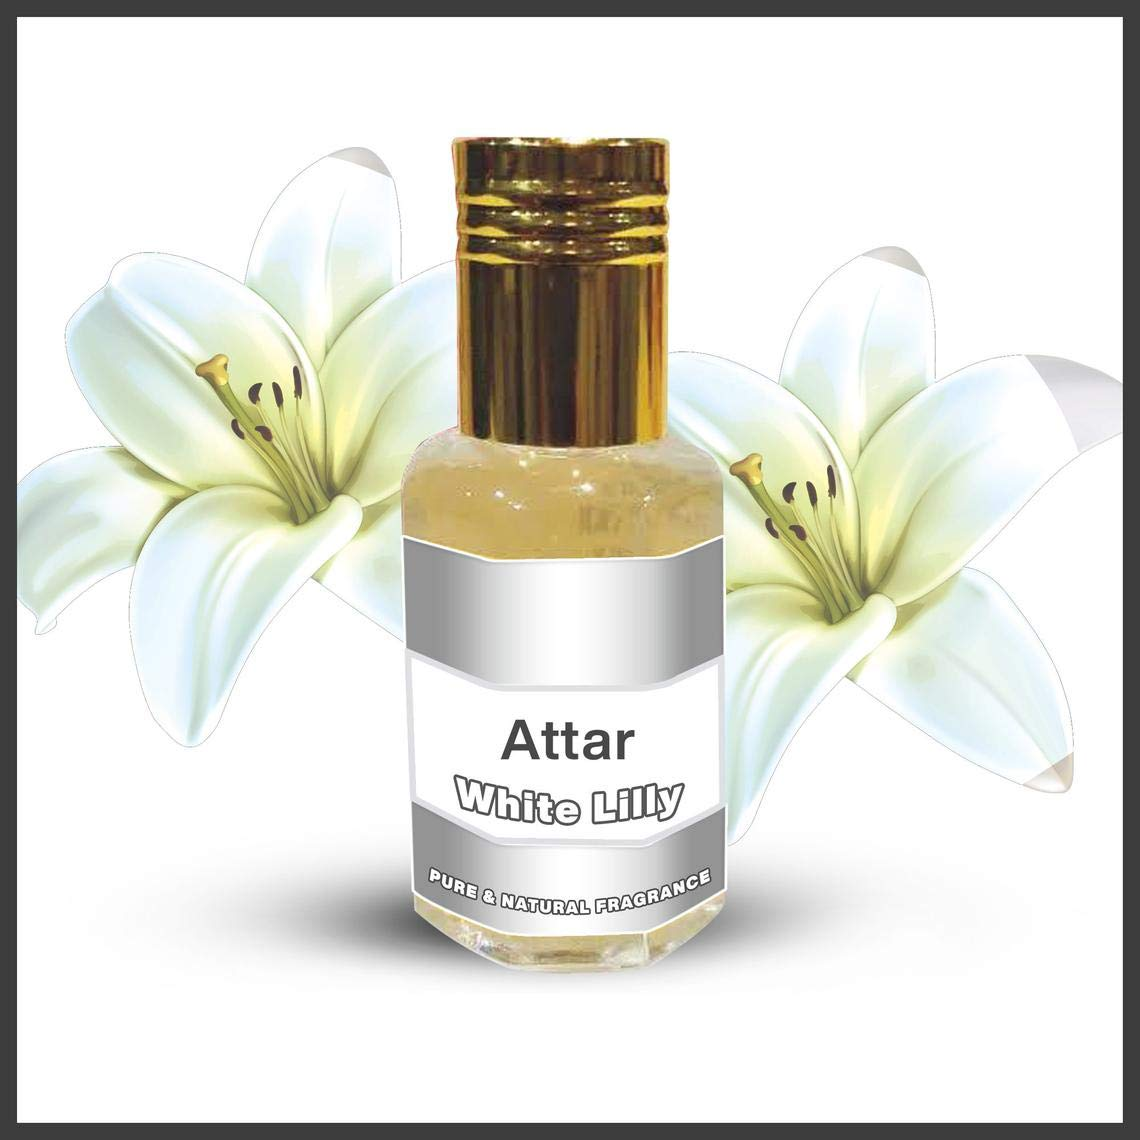 White El Paso Mall Lilly Attar Pure Fragrance On Super popular specialty store Perfume Roll